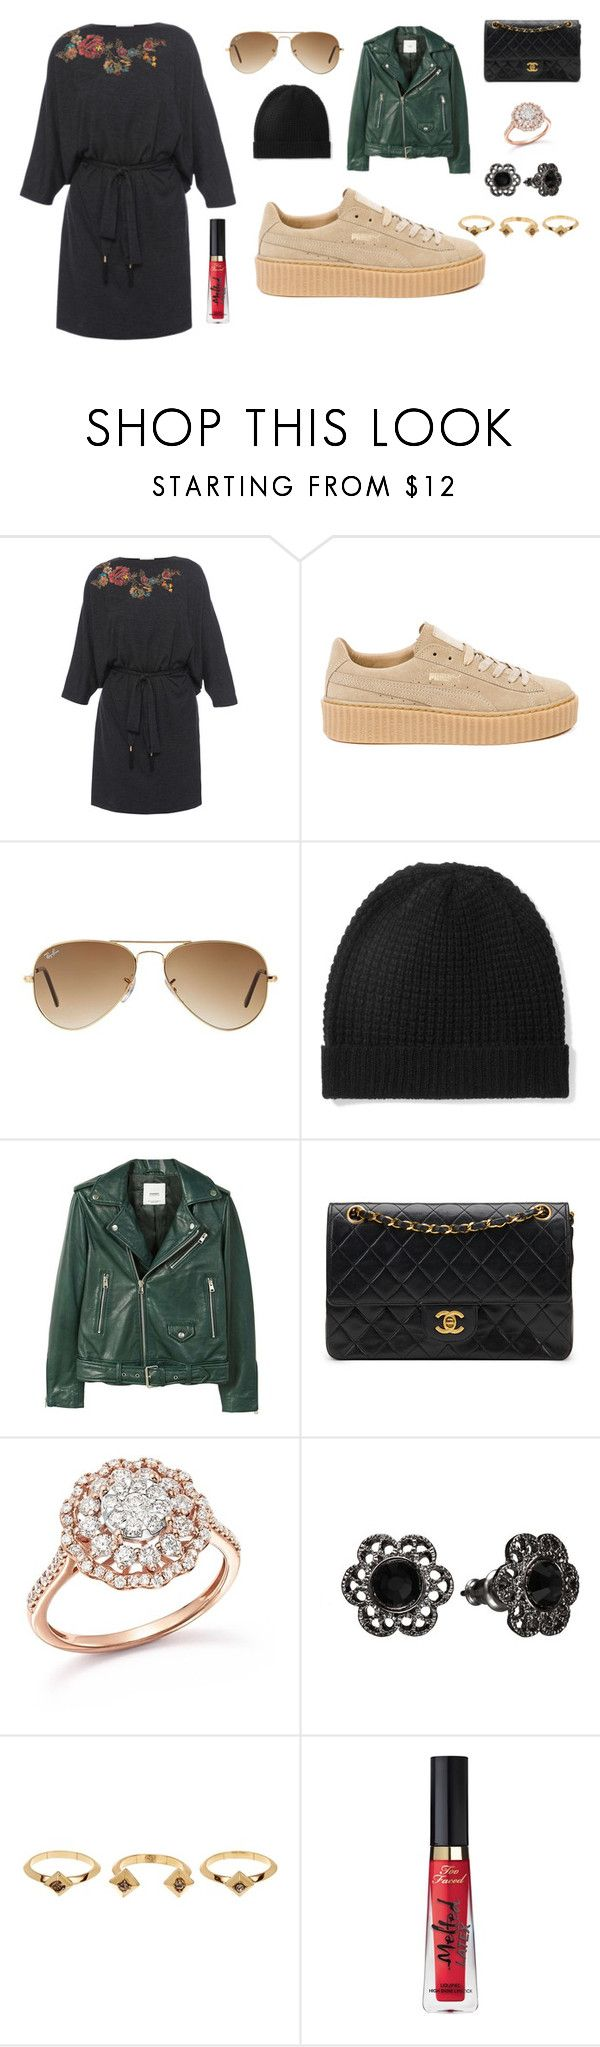 """""""Sans titre #7869"""" by yldr-merve ❤ liked on Polyvore featuring Megan Park, Puma, Ray-Ban, Madeleine Thompson, MANGO, Chanel, Bloomingdale's, 1928, House of Harlow 1960 and Too Faced Cosmetics"""